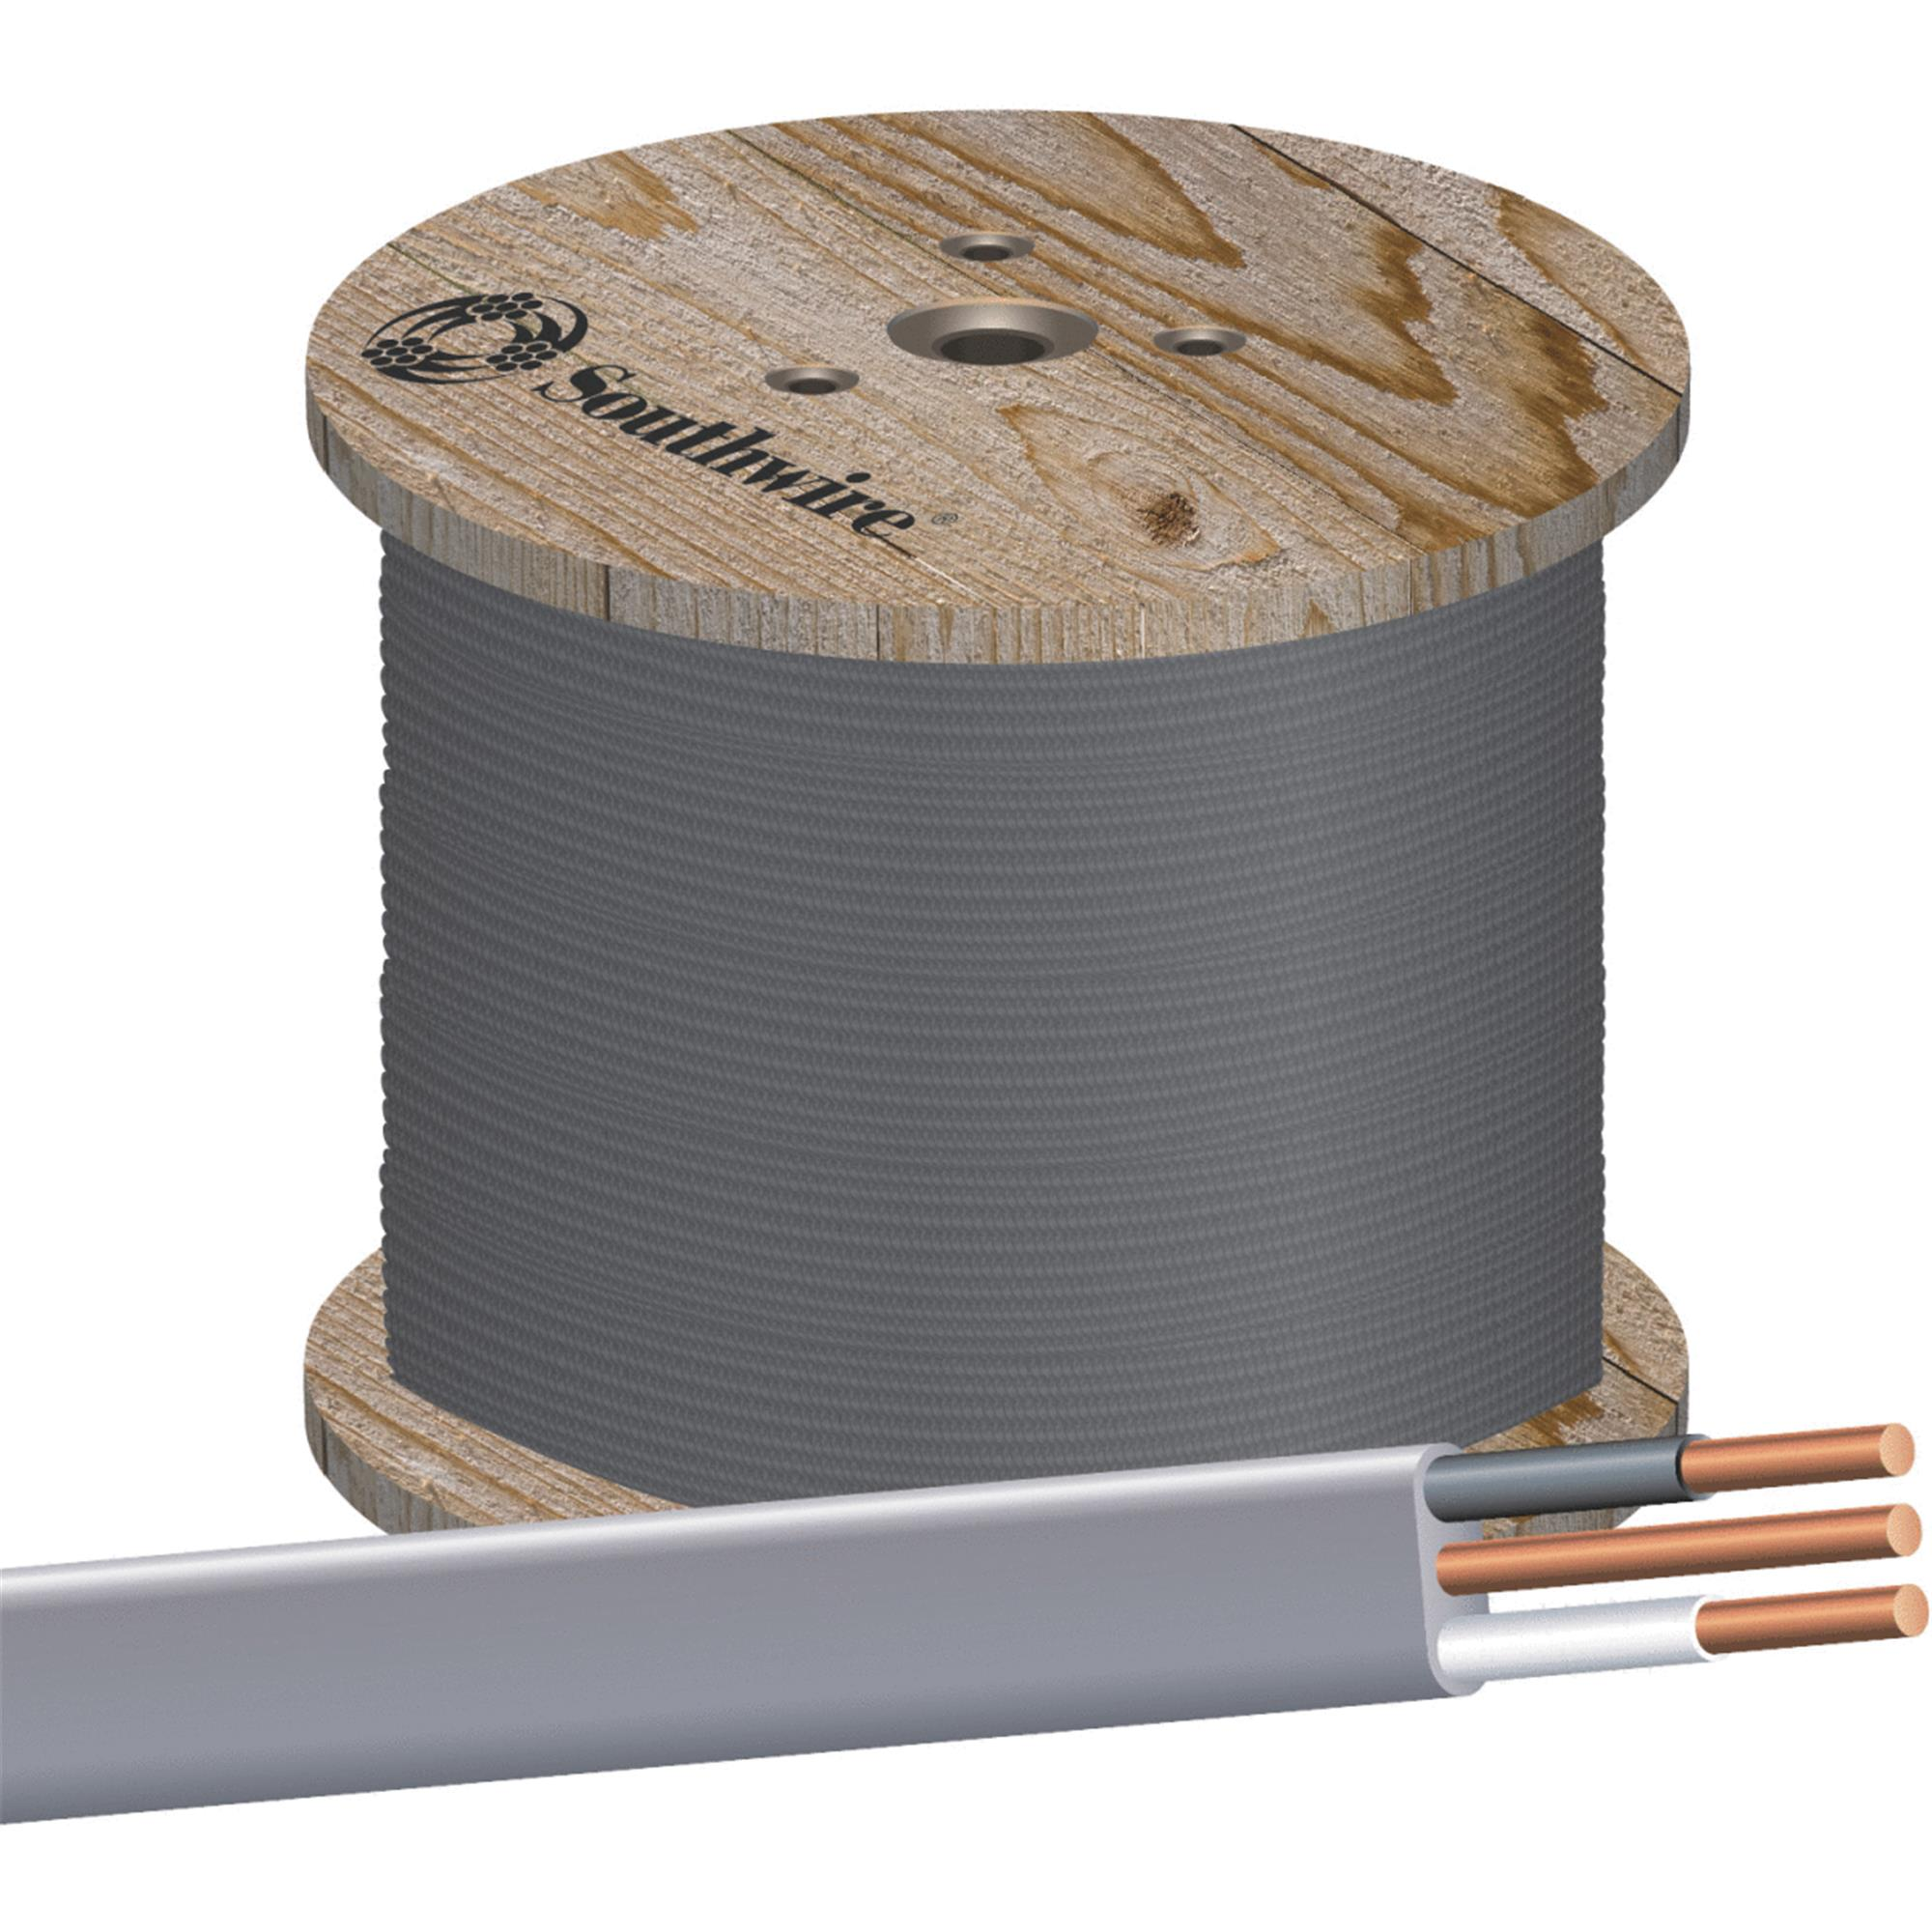 Southwire 12-2 UFW/G Wire